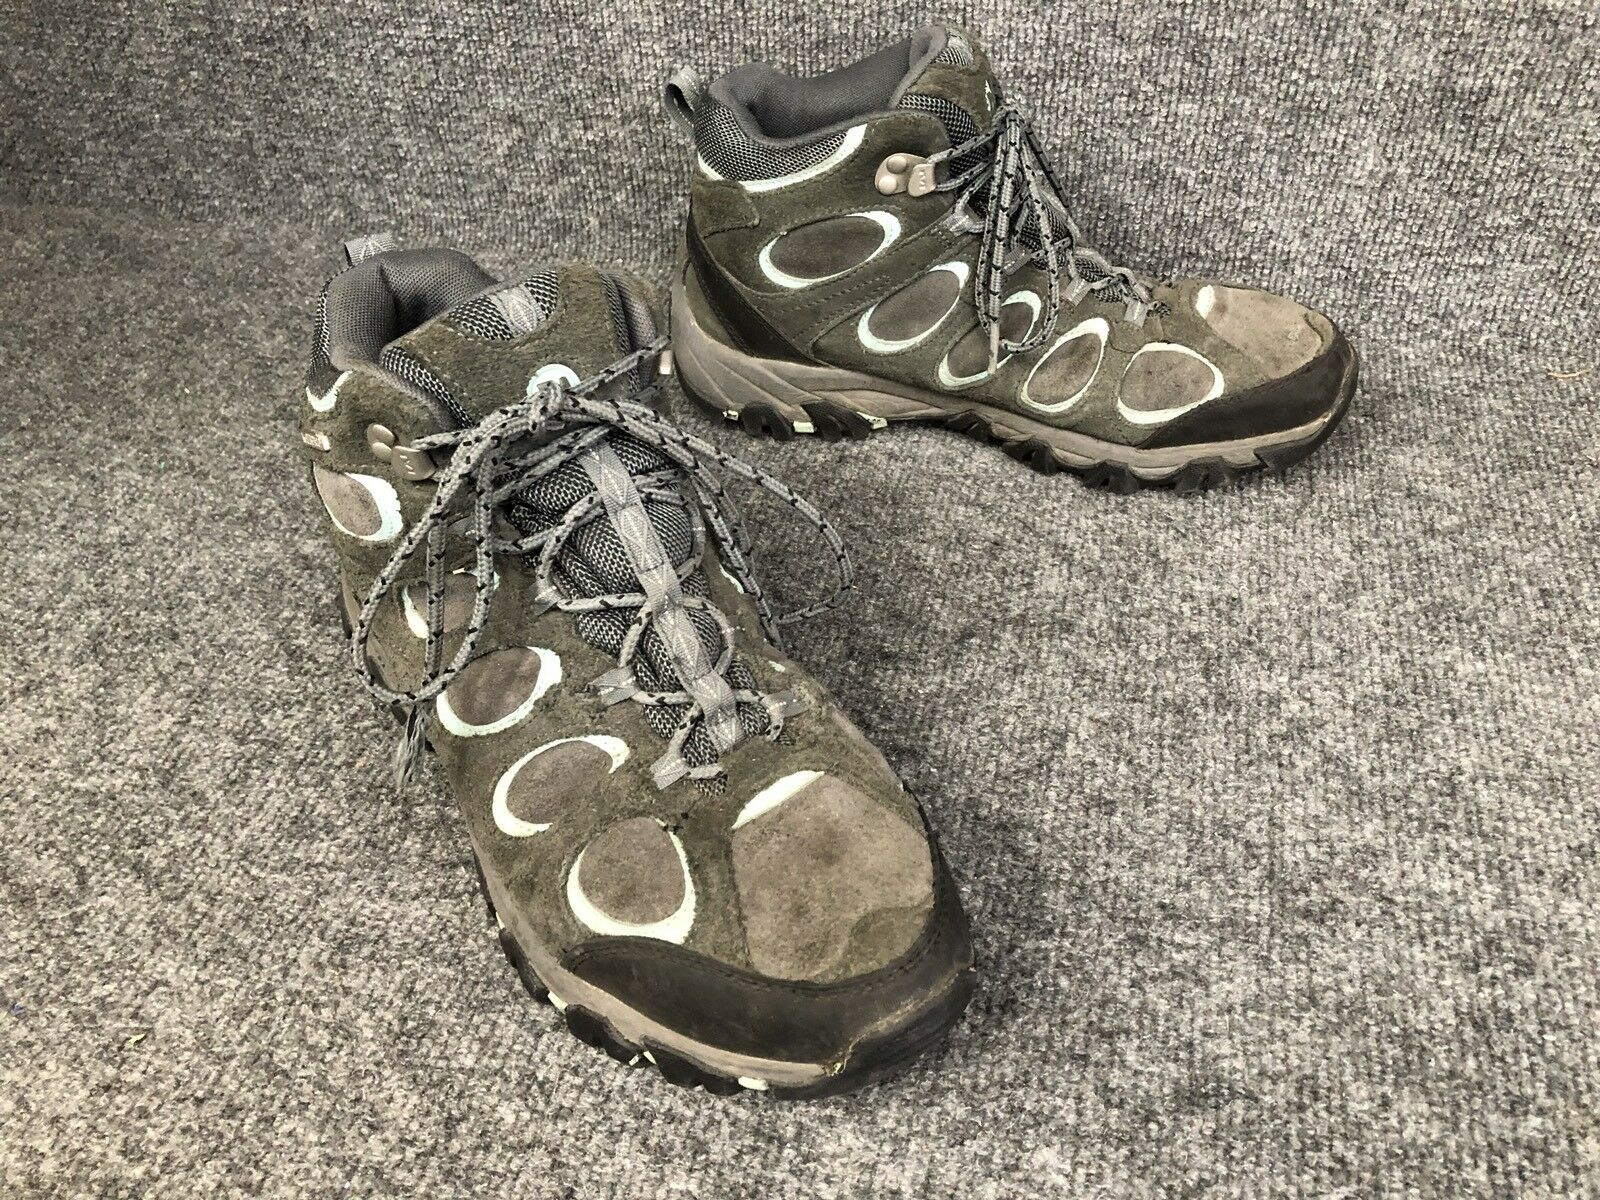 Merrell Womens 9.5 Ridgepass Mid Granite Eggshell bluee Waterproof Hiking Boots